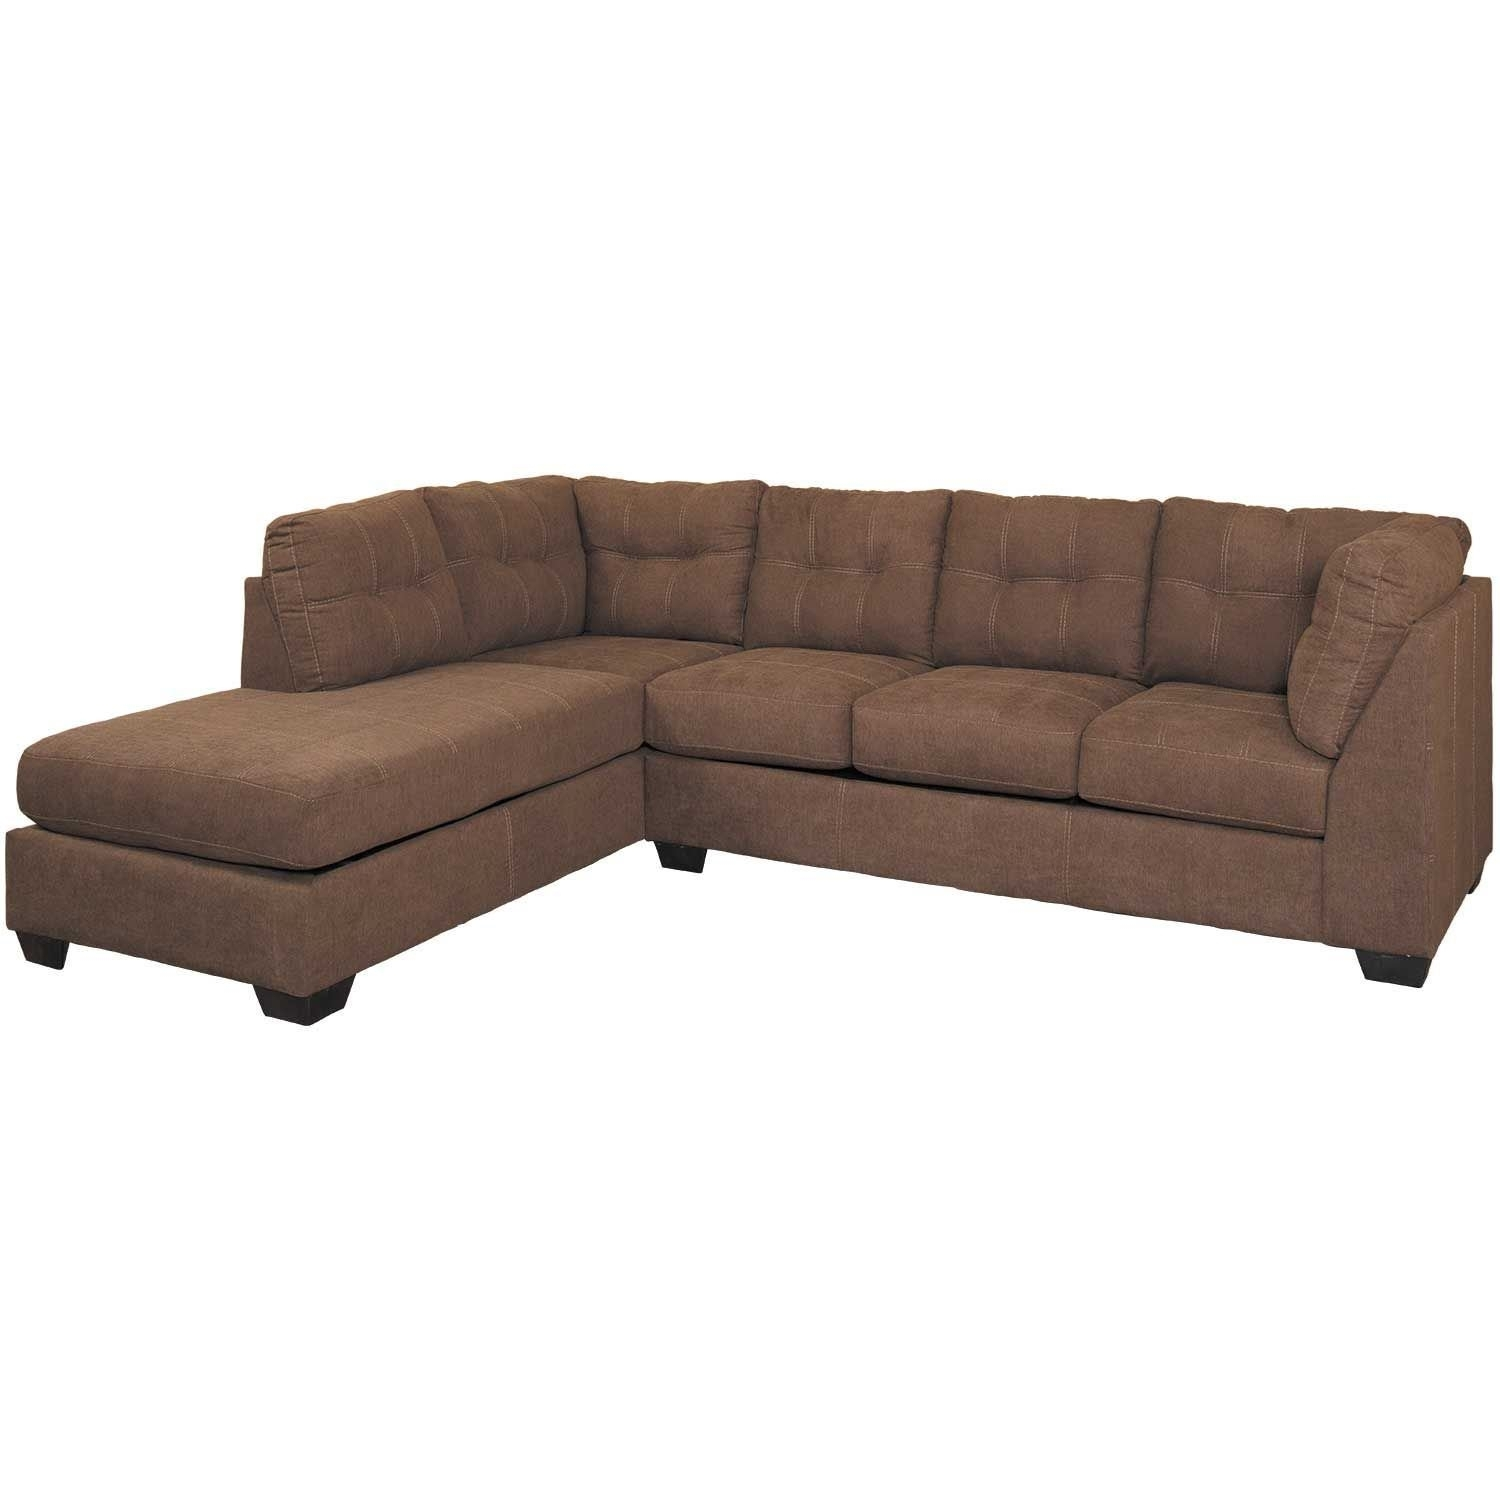 Maier Walnut 2 Piece Sectional With Laf Chaise | 4520116/67 | Ashley Regarding Arrowmask 2 Piece Sectionals With Sleeper & Left Facing Chaise (Image 17 of 25)